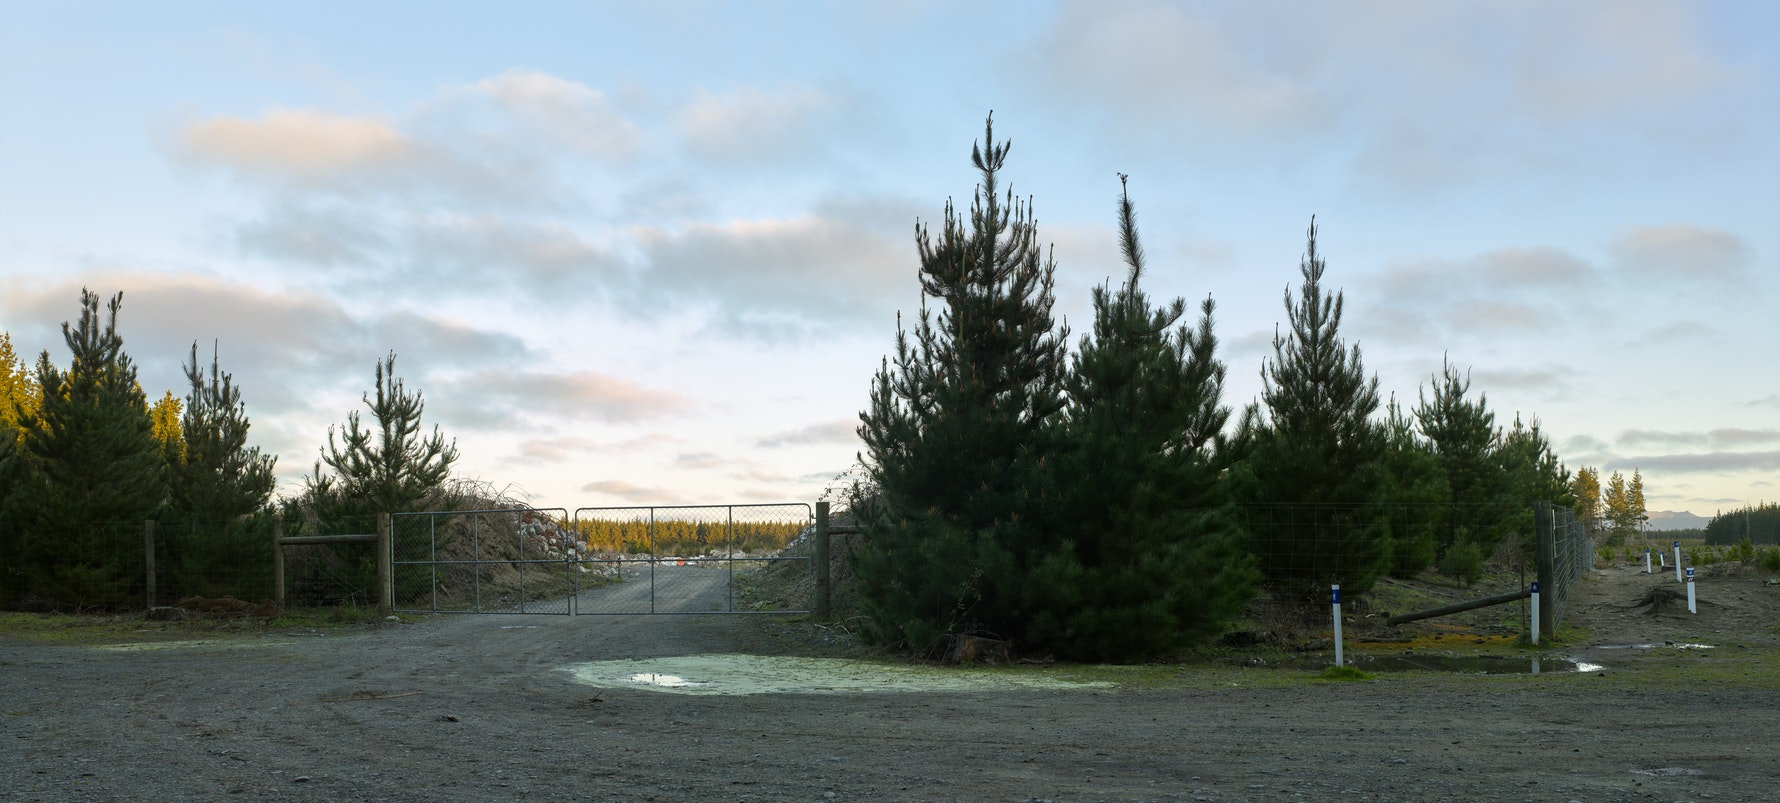 'Exclusion Zone Site D', Bottle Lake Forrest, 2016. Temporary storage site for sensitive earthquake demolition materials.